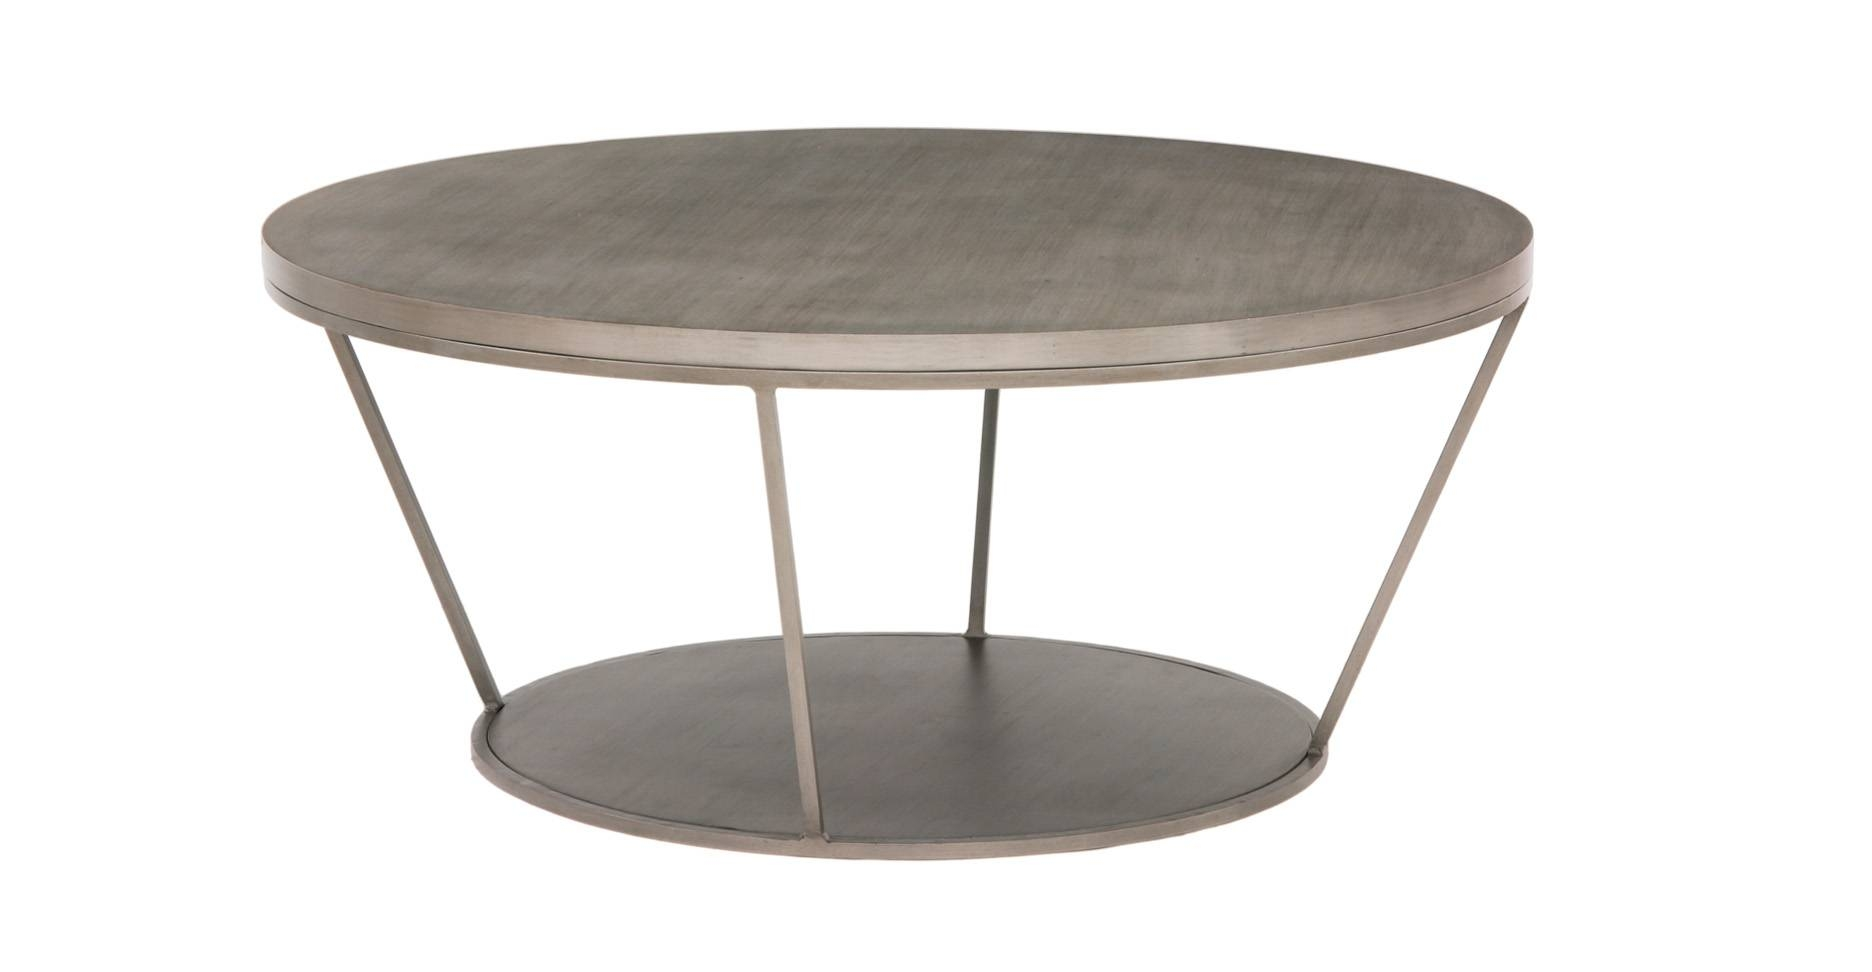 Coffee Tables Ideas: Best Round Metal Coffee Table Base Large within Round Metal Coffee Tables (Image 5 of 15)